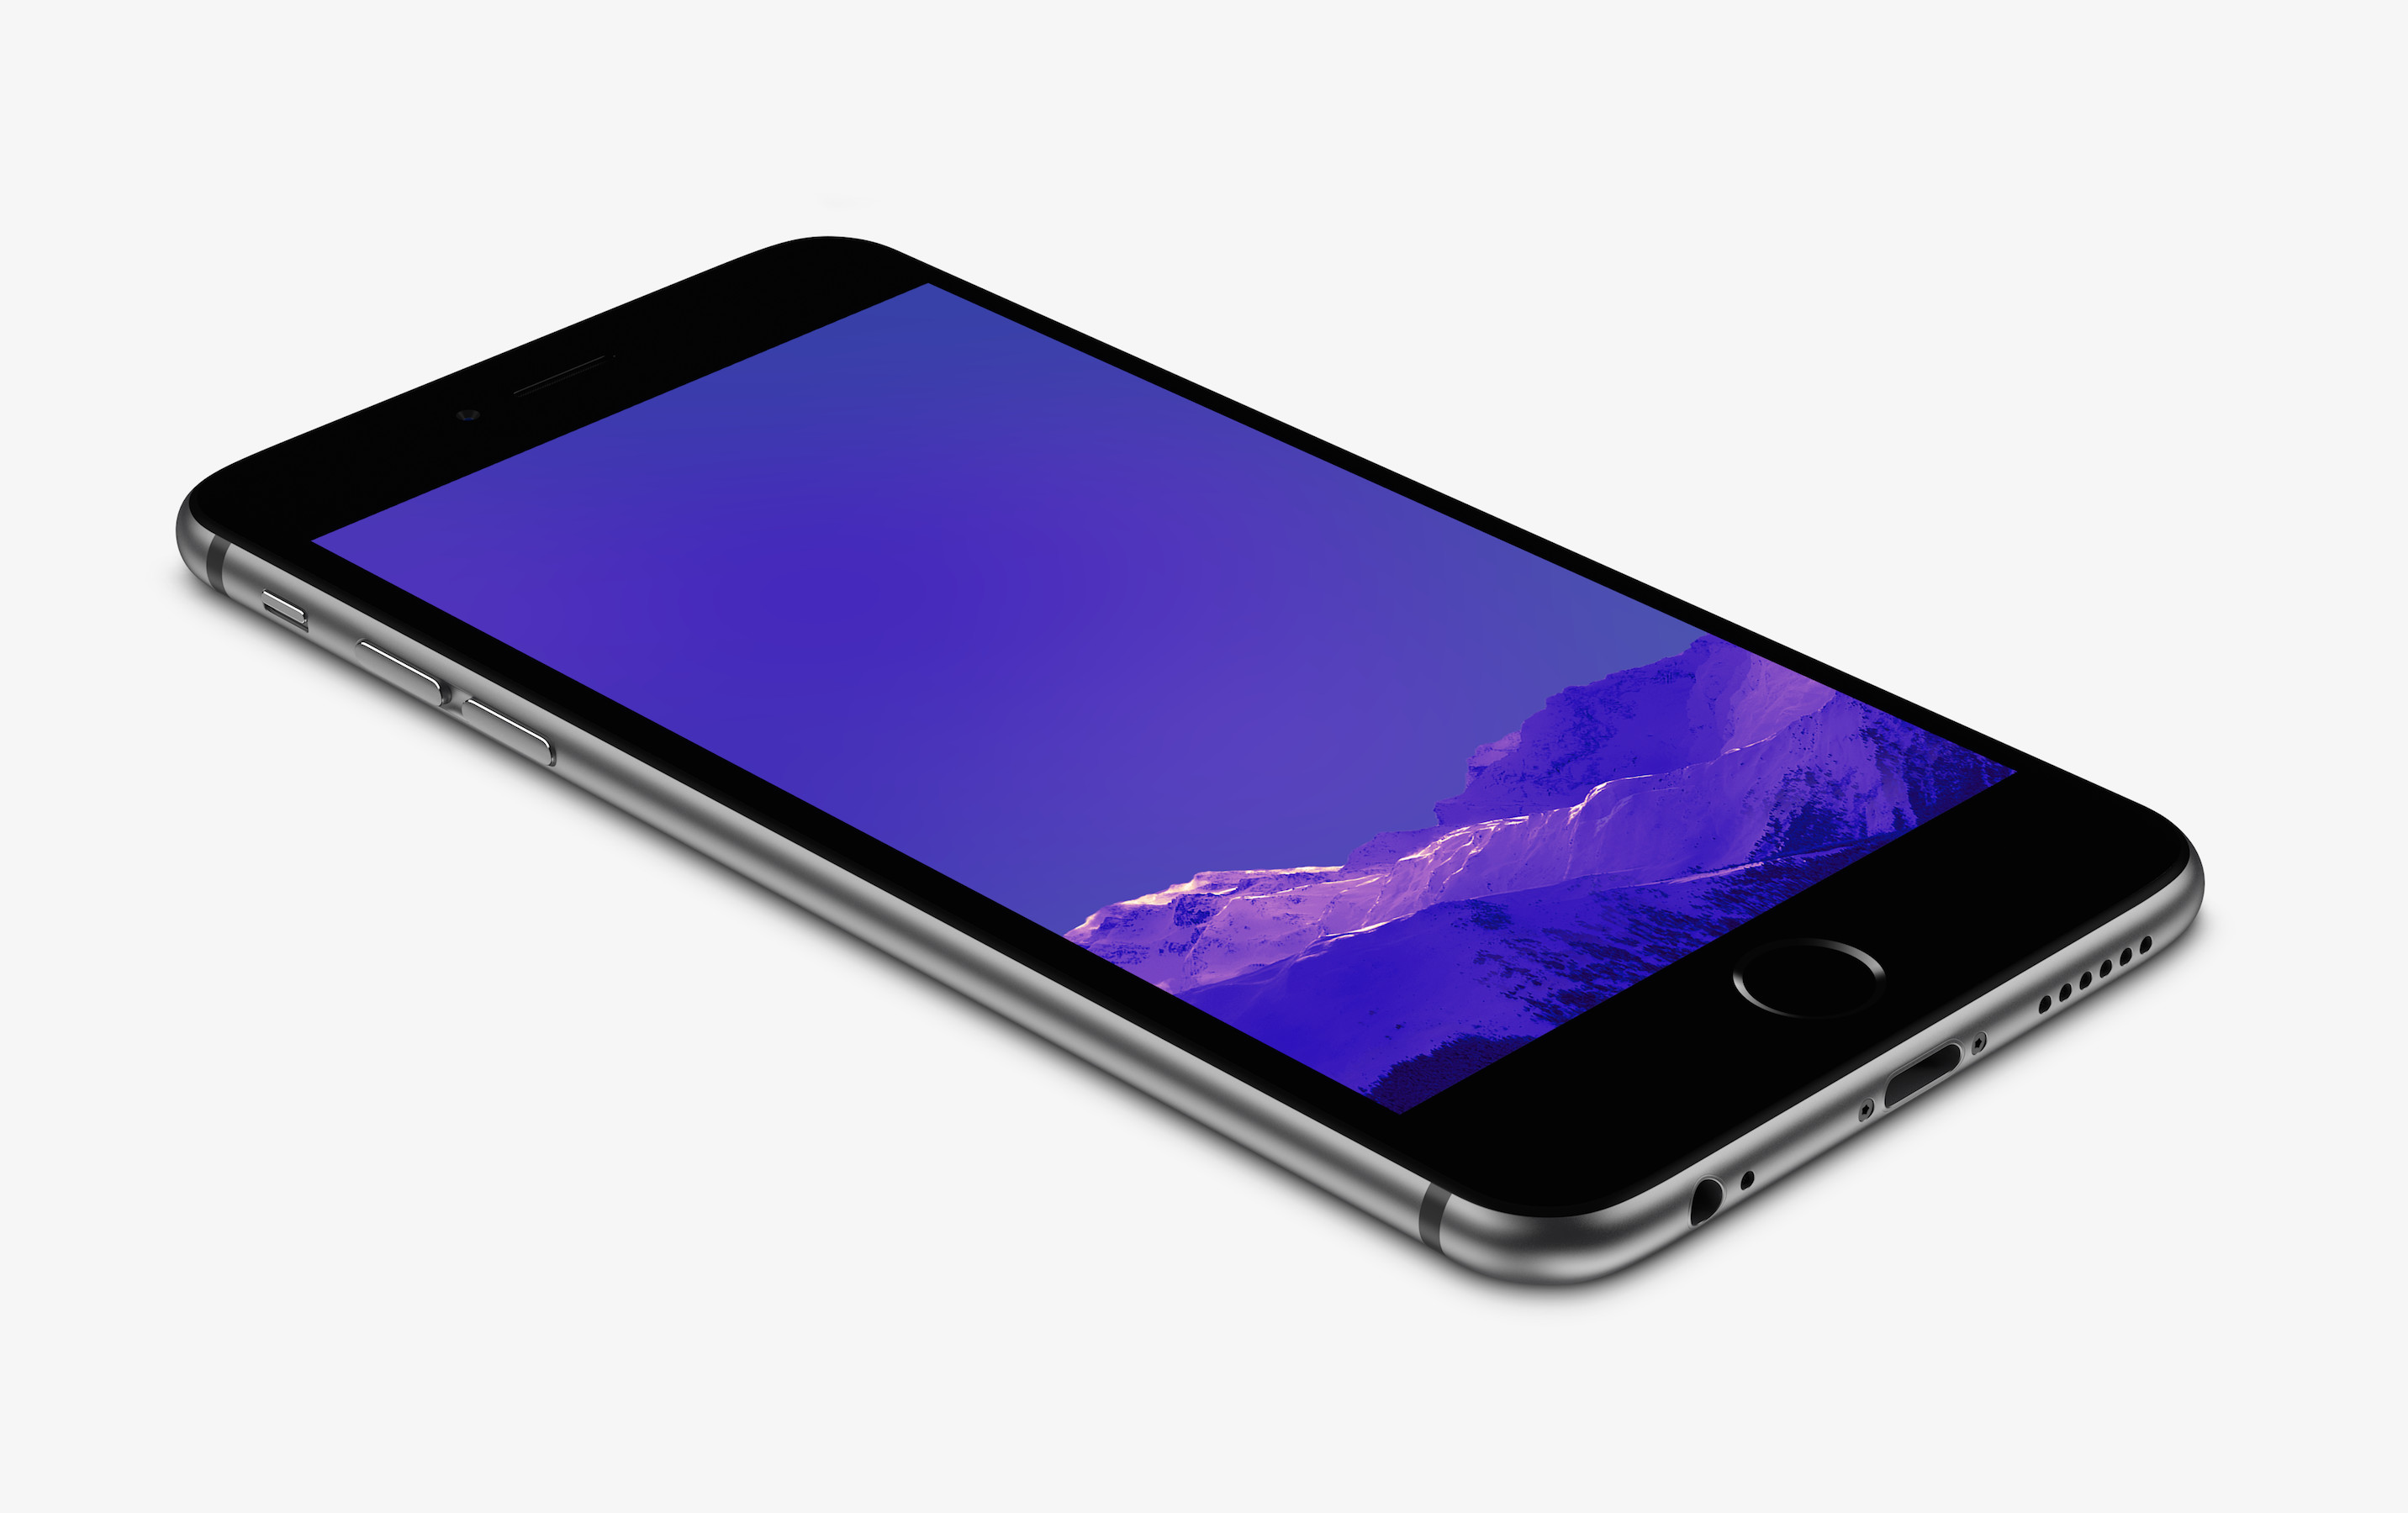 … Purple Mountain Wallpaper for iPhone 6 and 6 Plus by kiwimanjaro